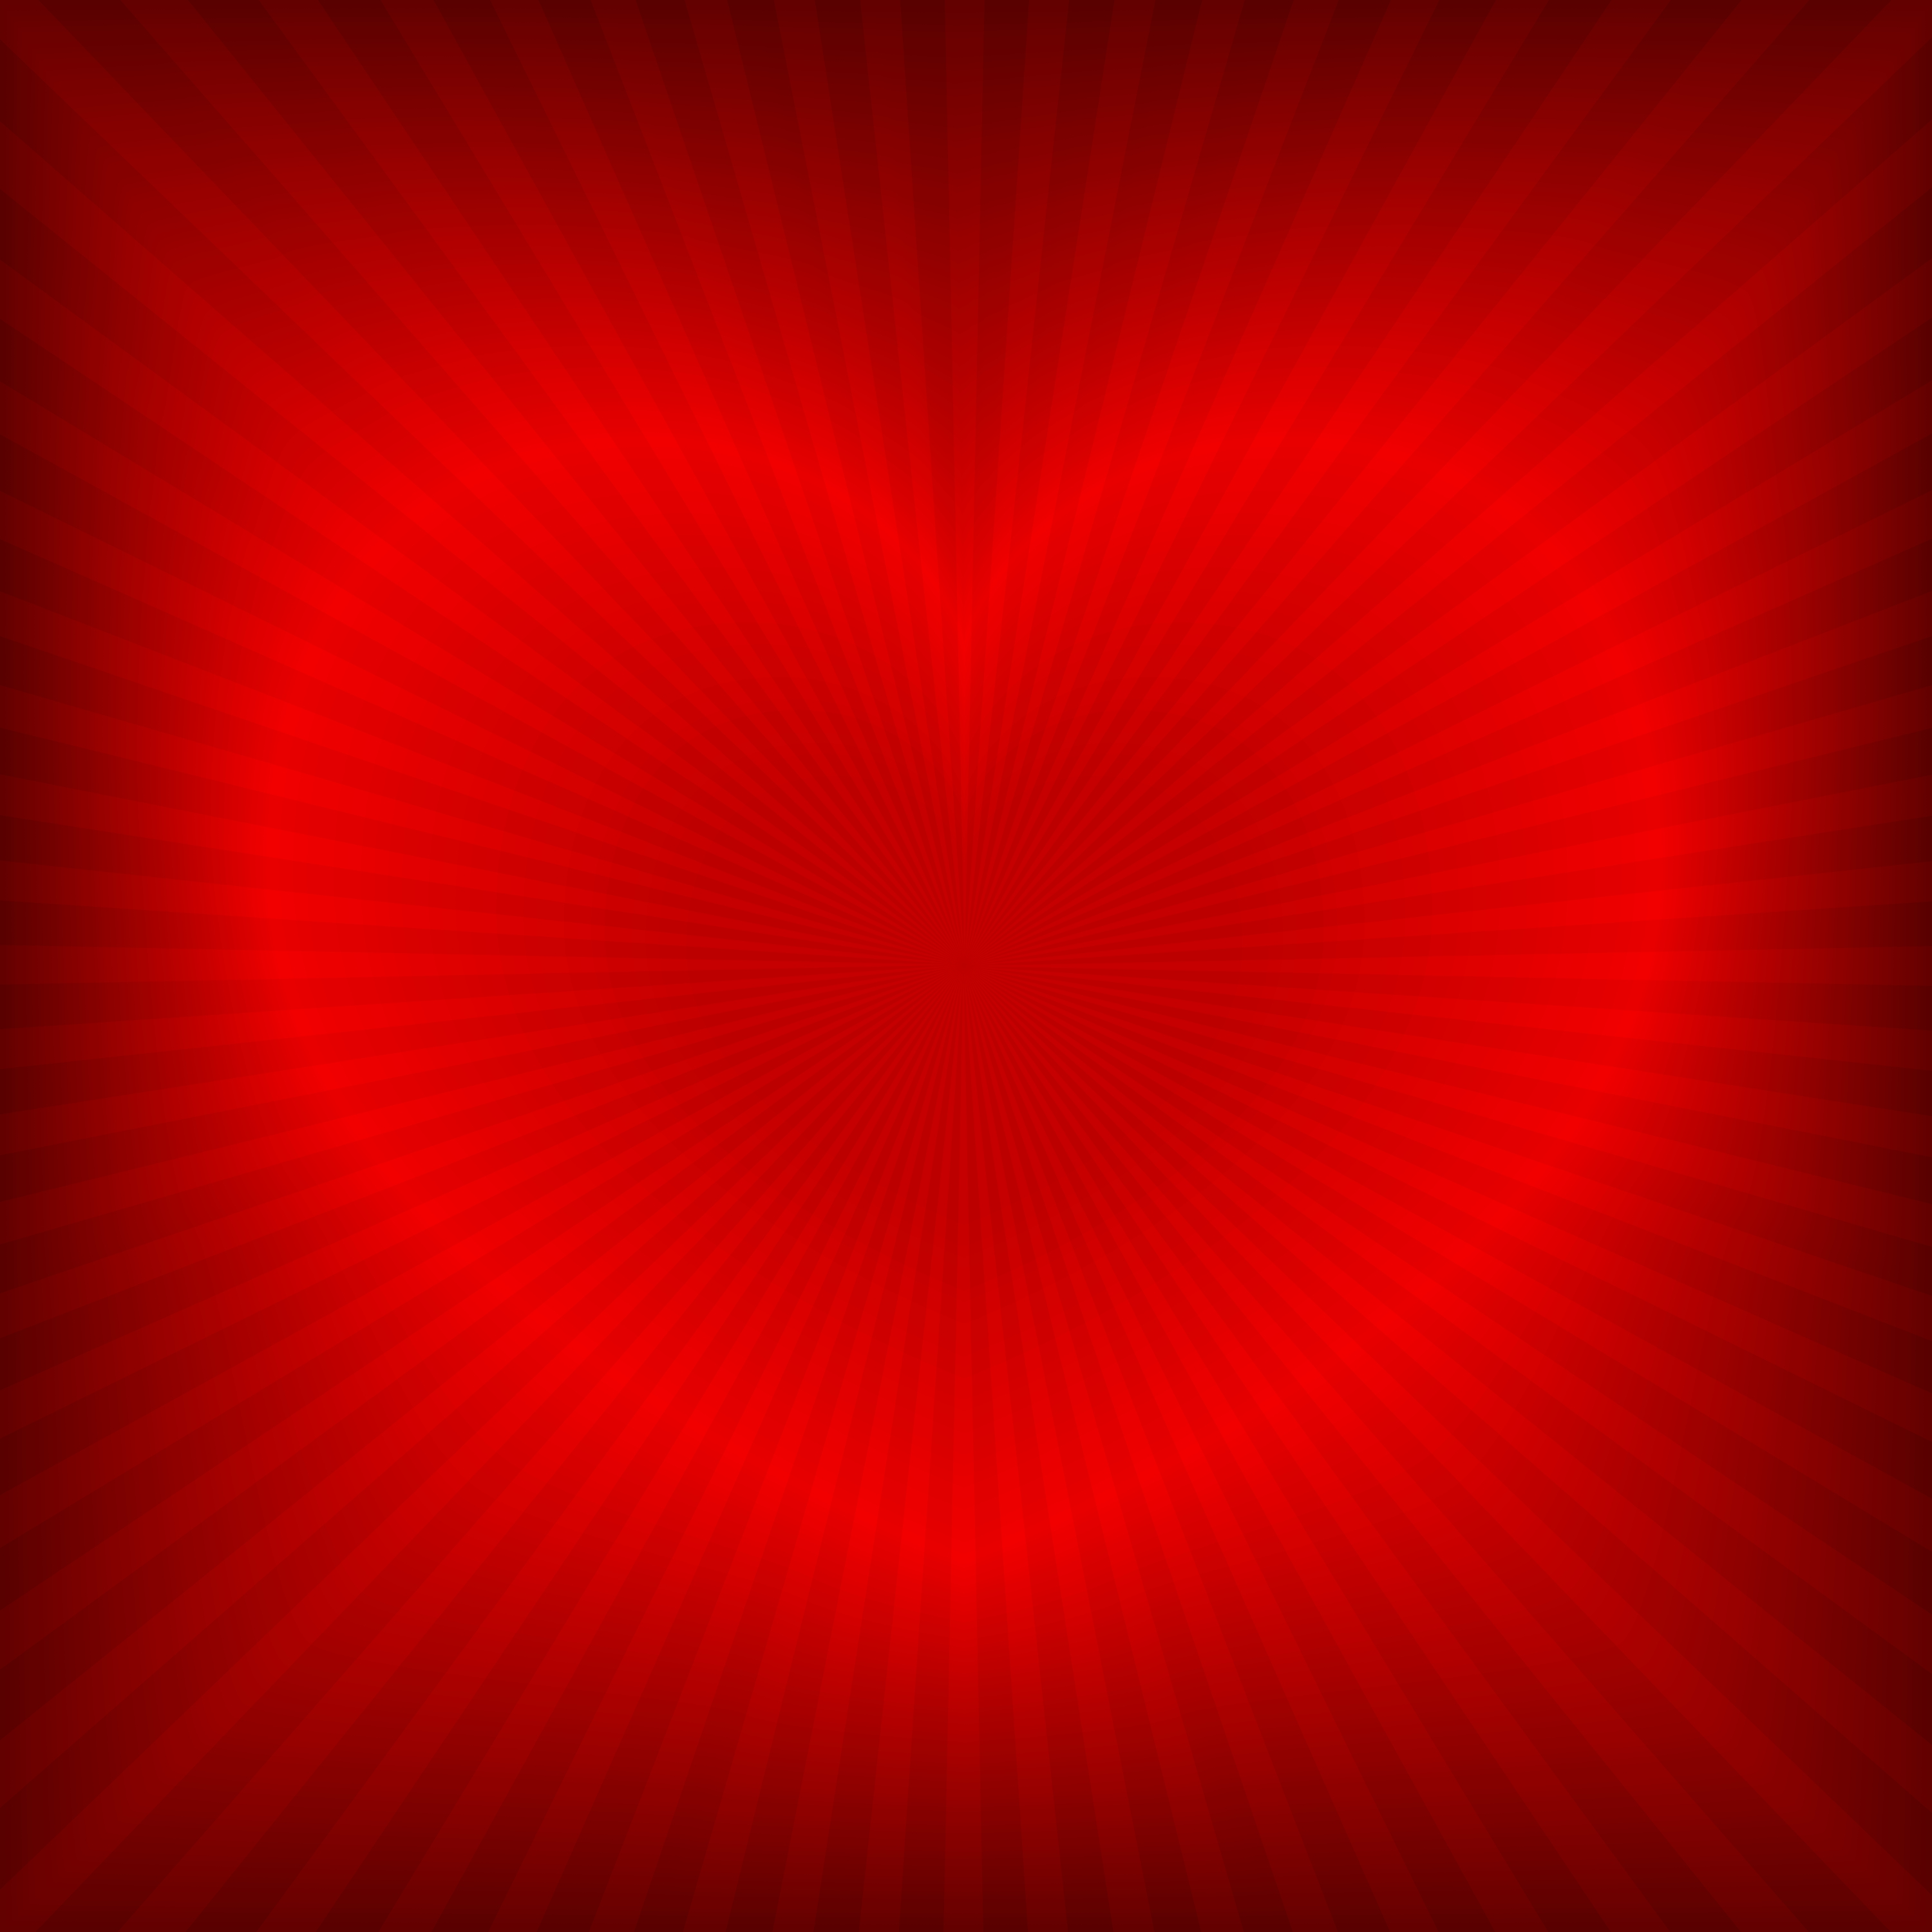 Red Heart Background - High-quality